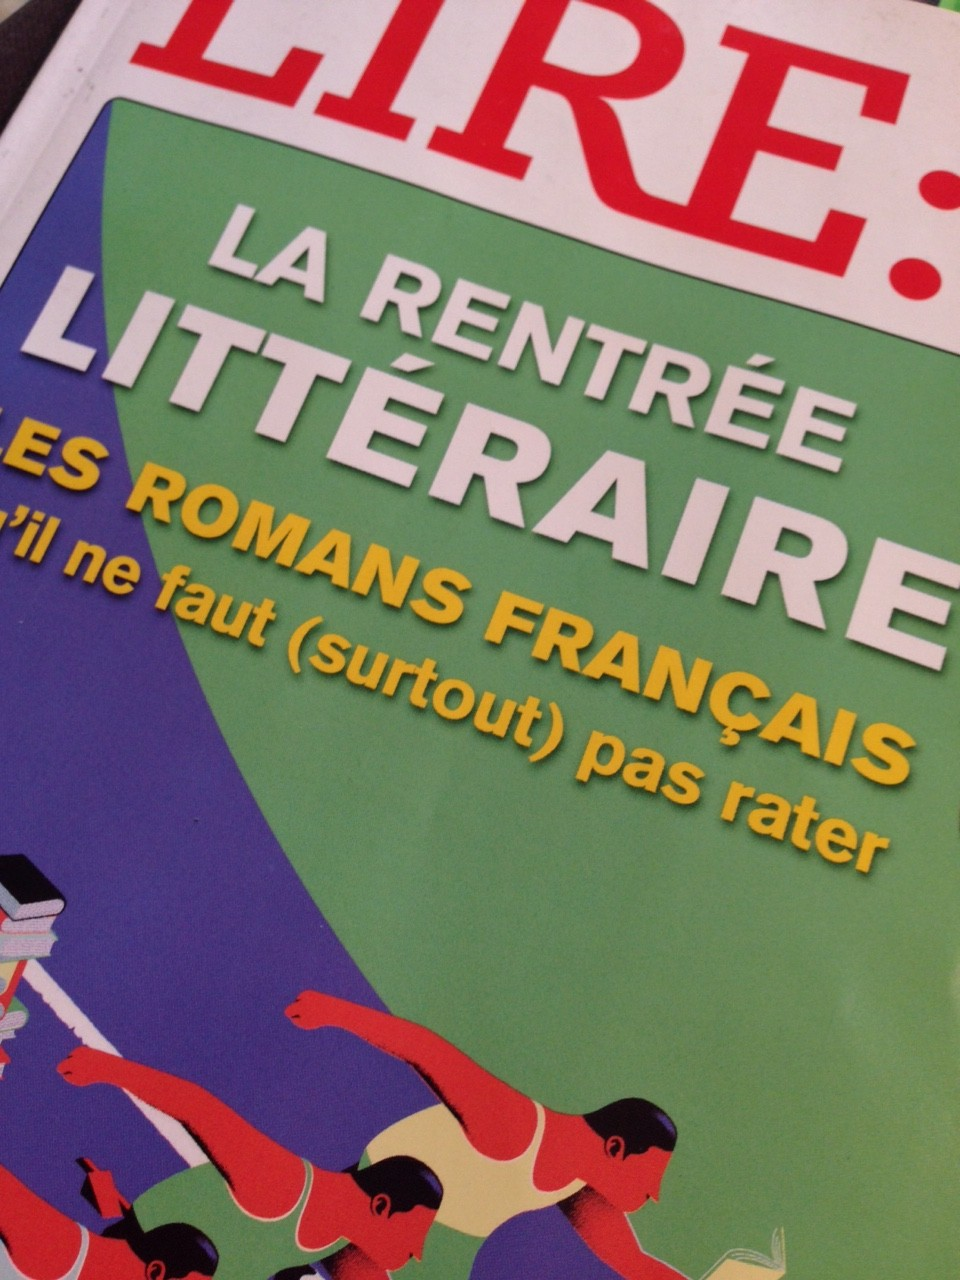 LIRE september rentree litteraire